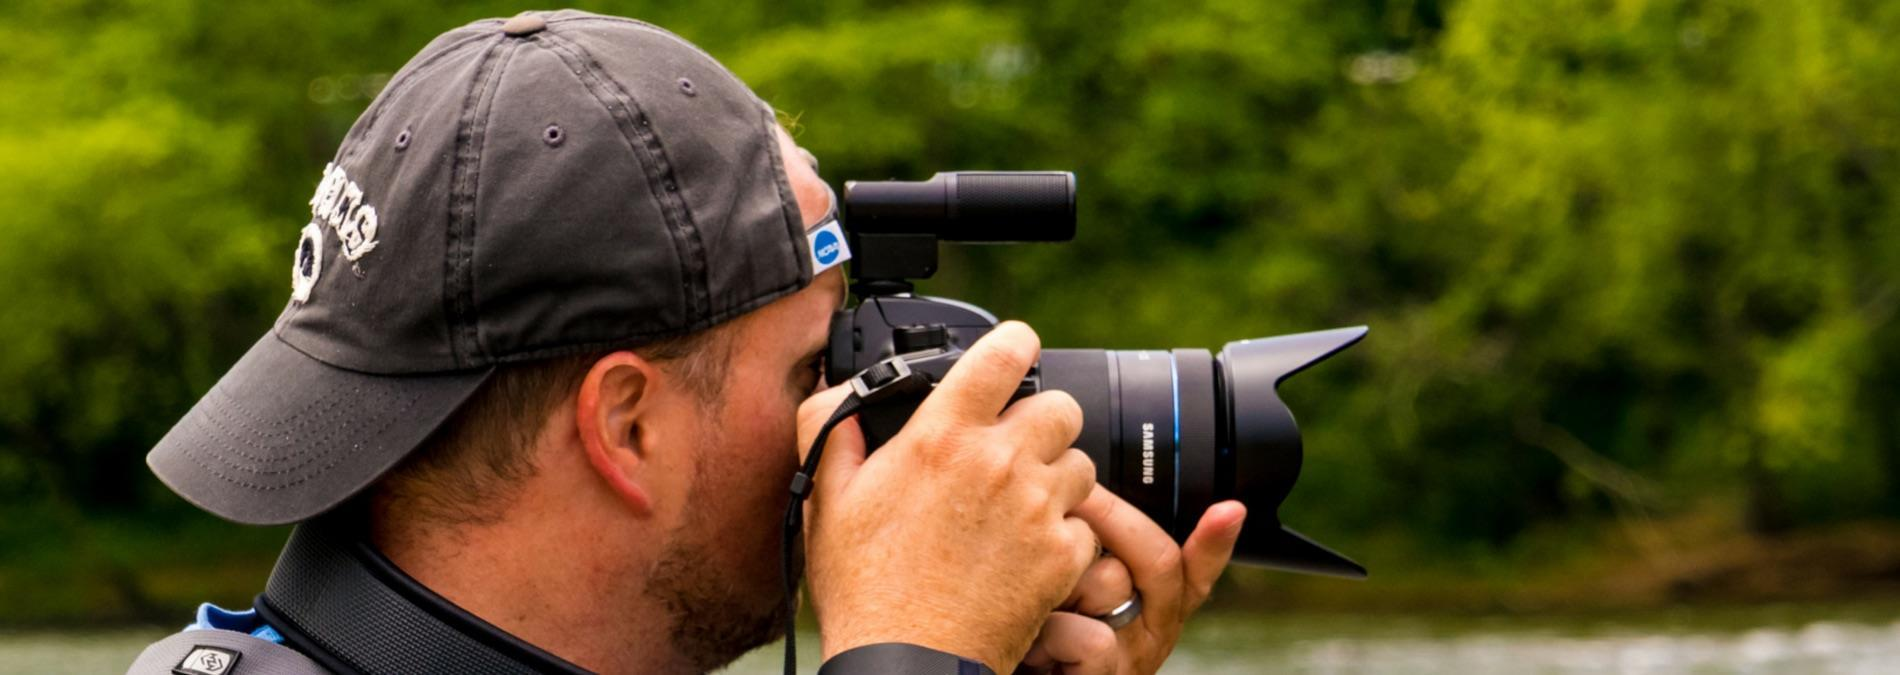 New Photographers: 8 Reasons Your Camera Should Go Everywhere You Go